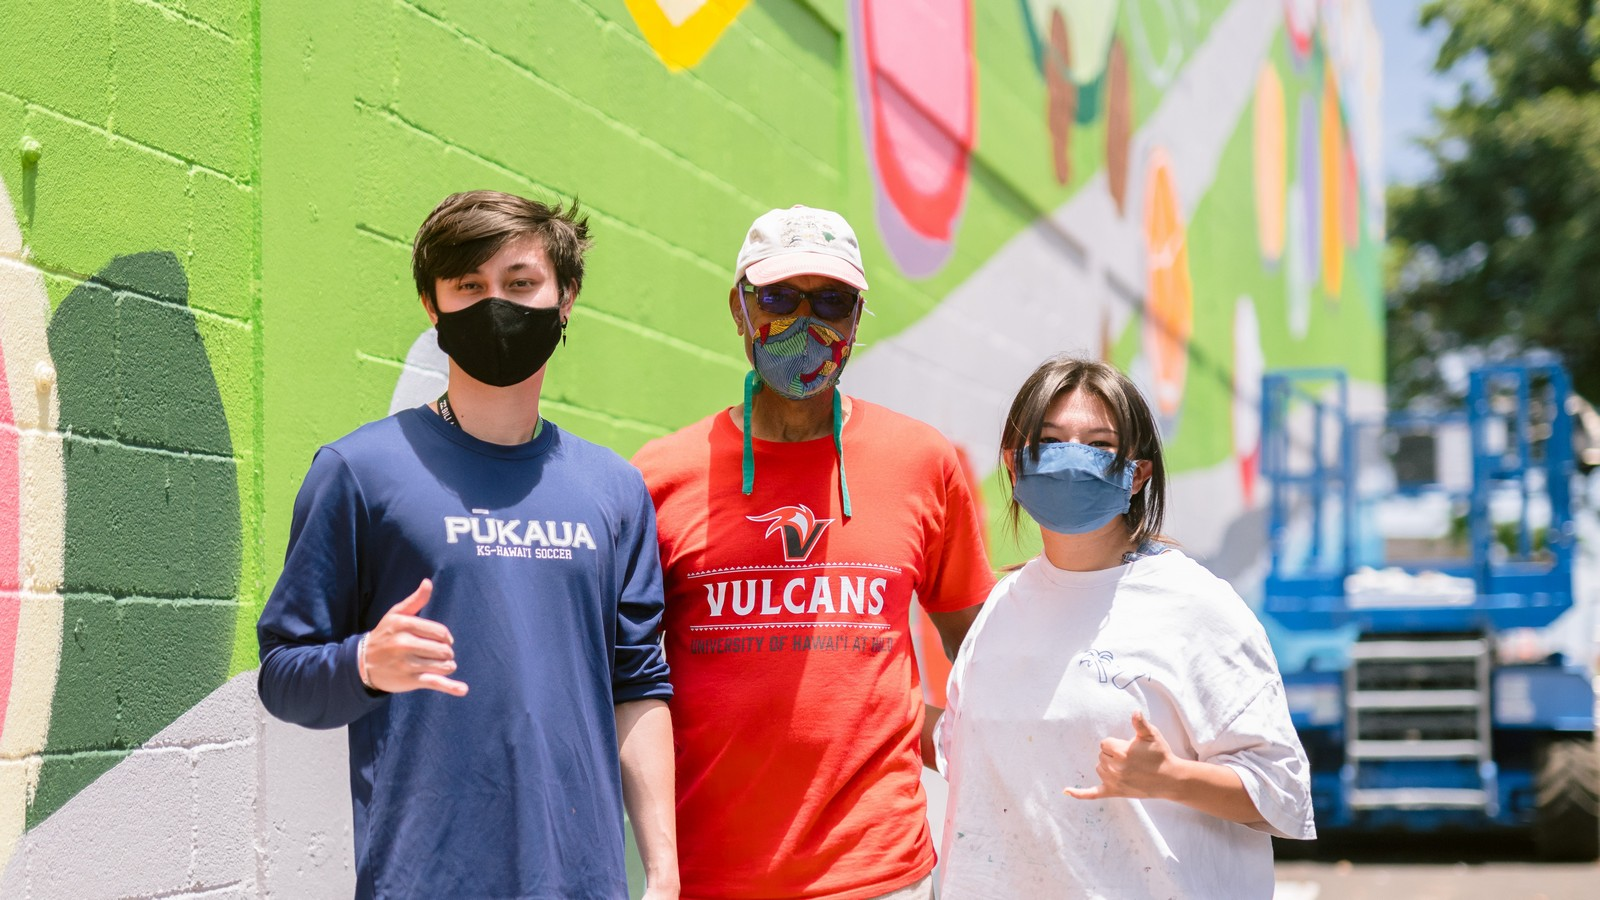 Three people stand for photo in front of colorful mural.